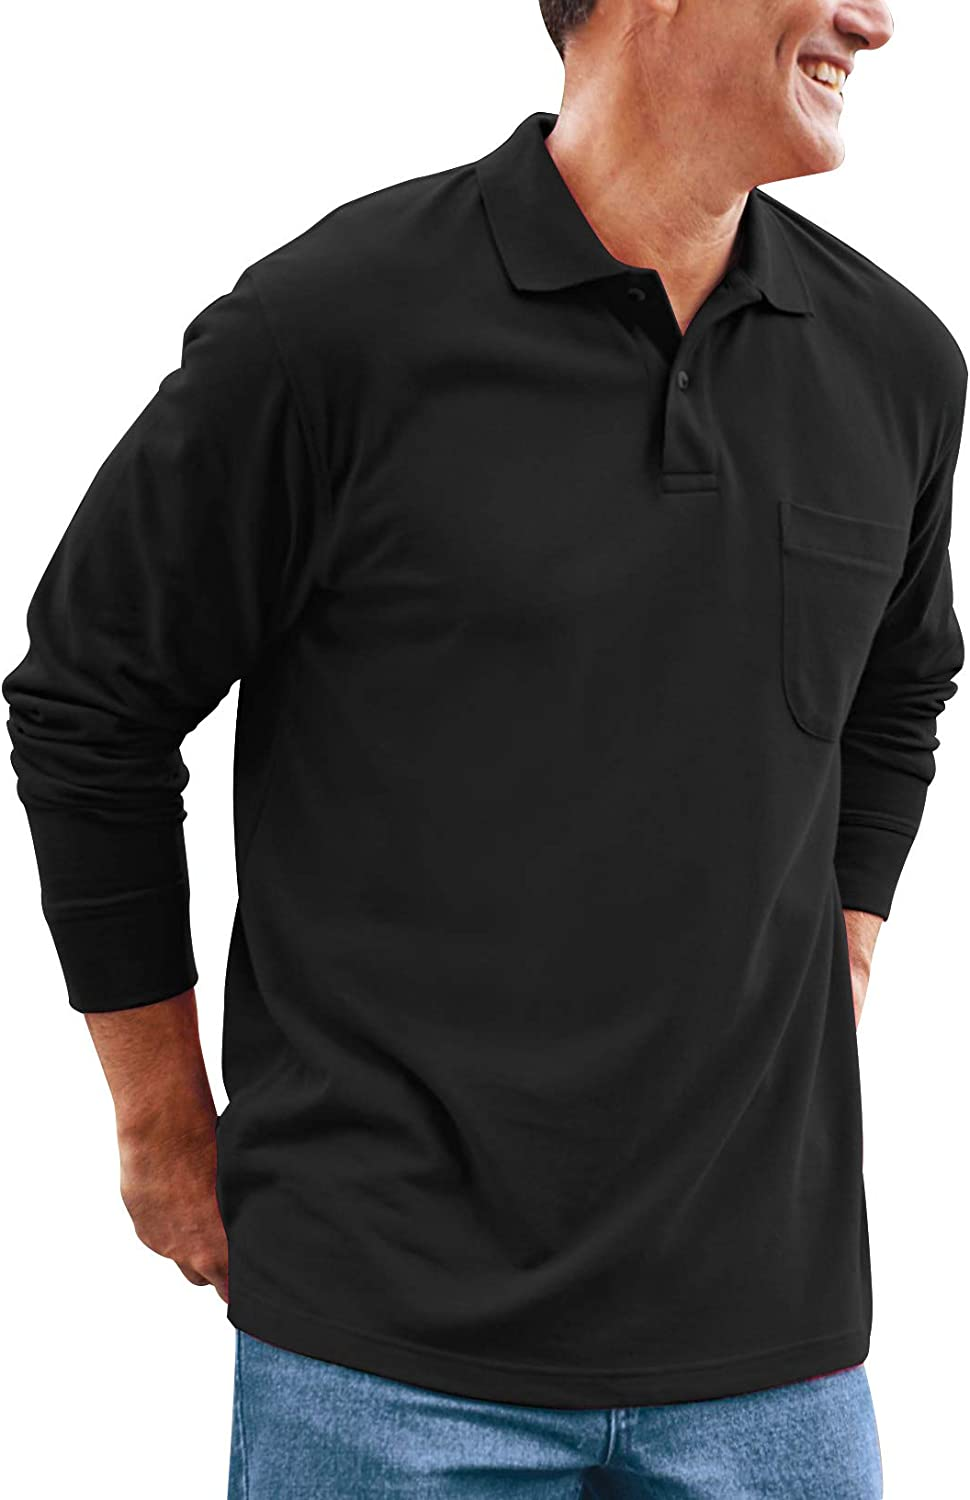 New arrival Brosloth Men's Long Max 85% OFF Sleeve Polo Caus Fit Shirt Regular Classical